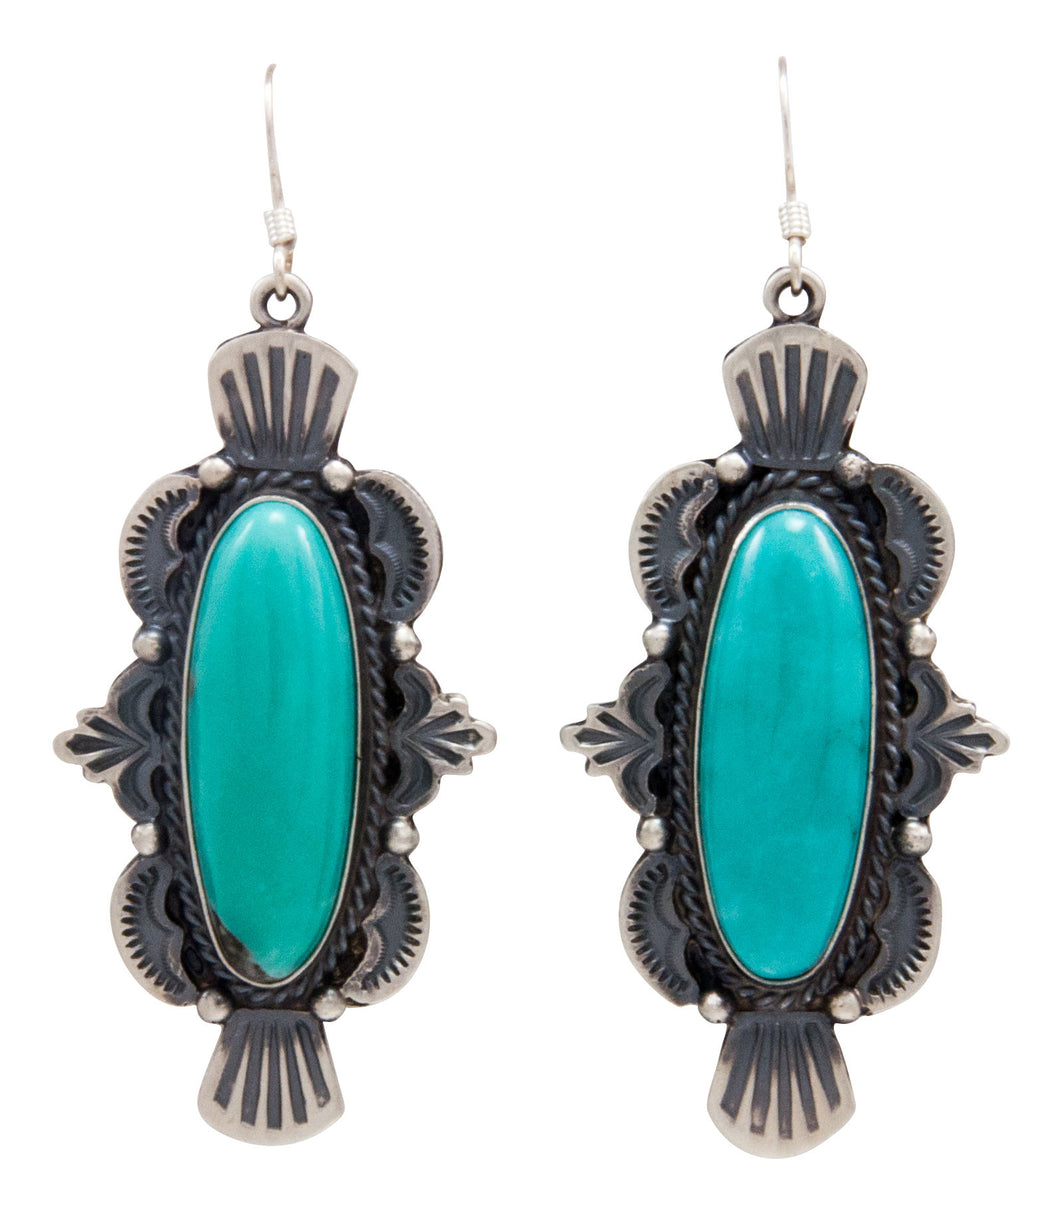 Navajo Native American Kingman Turquoise Earrings by Calladitto SKU232126